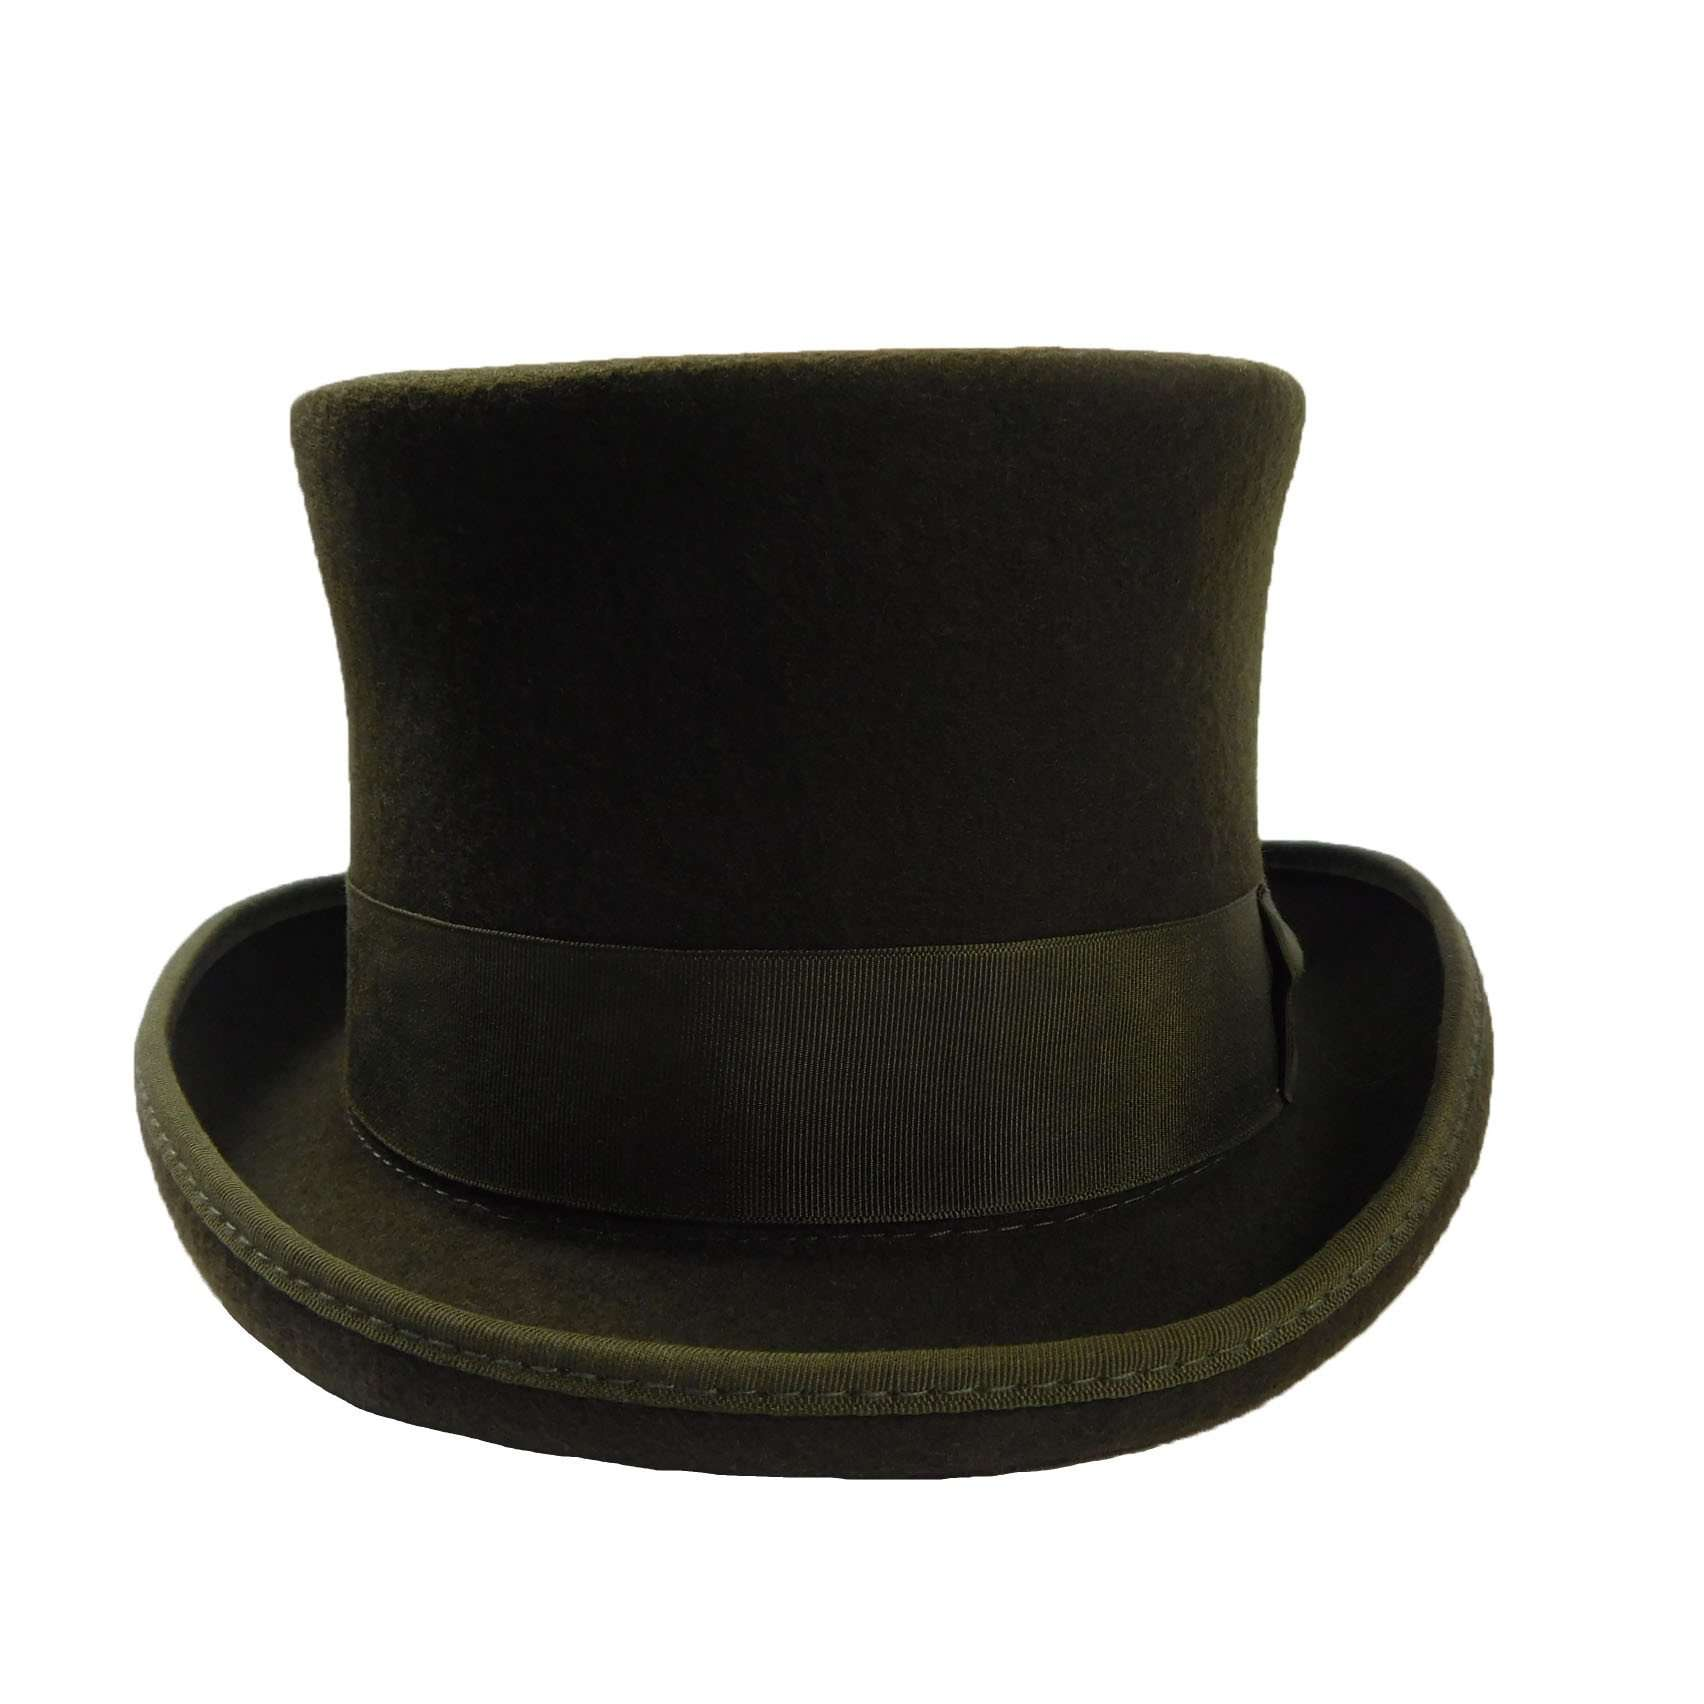 Classic Tall Olive Wool Felt Top Hat by JSA for Men - SetarTrading Hats